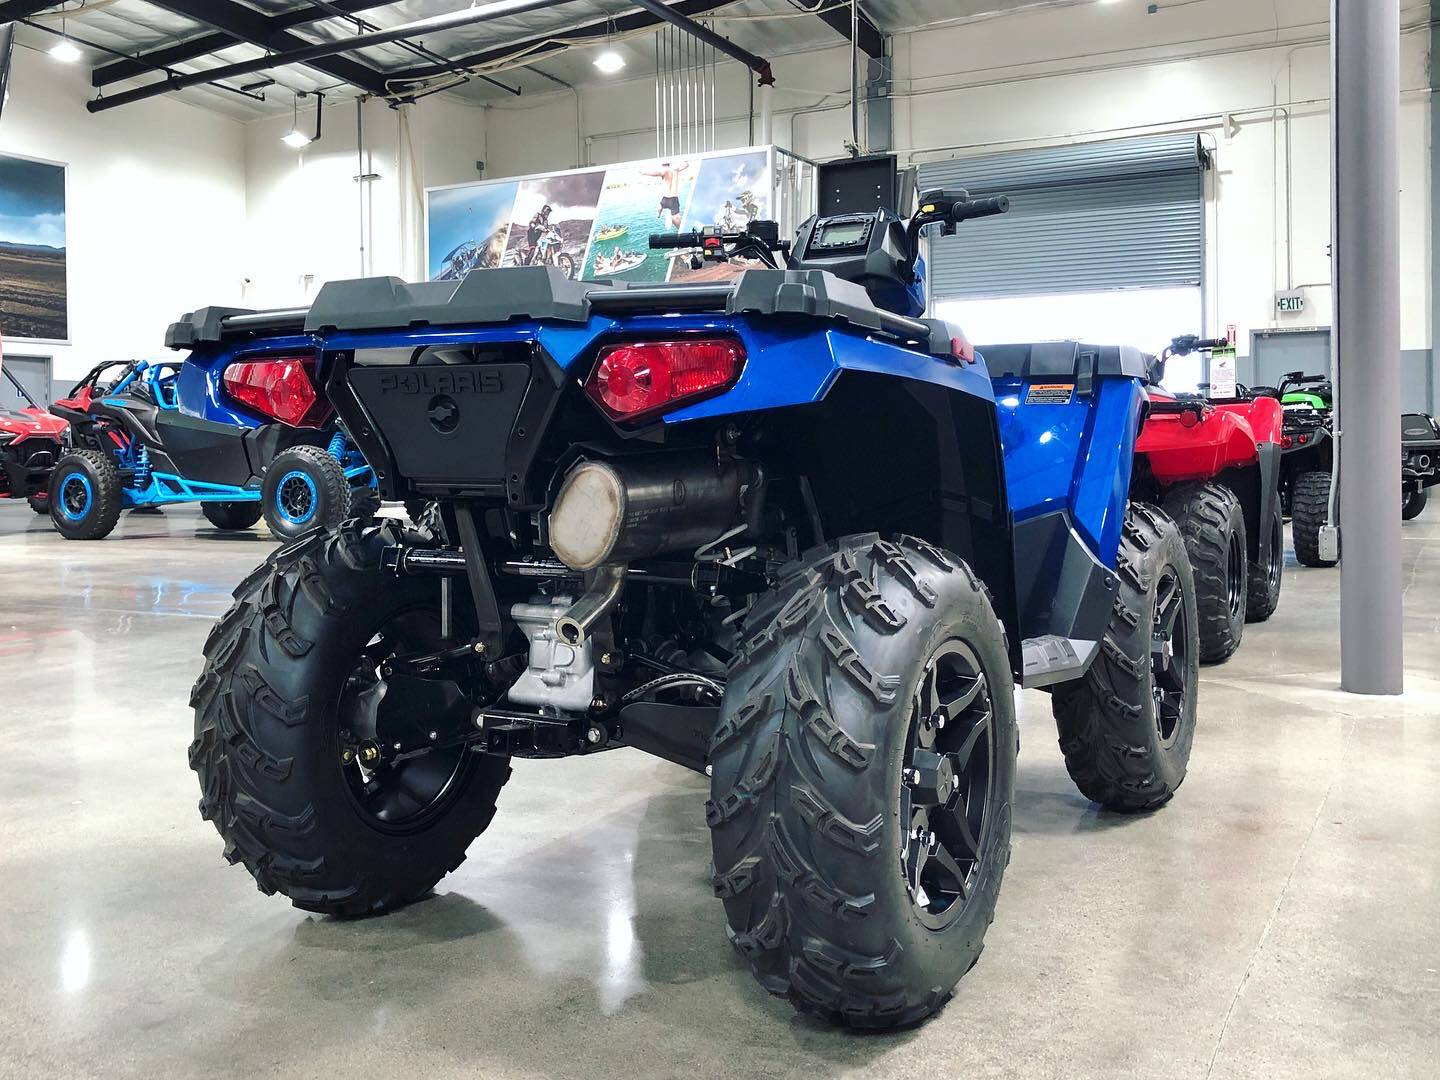 2020 Polaris Sportsman 570 Premium in Corona, California - Photo 3